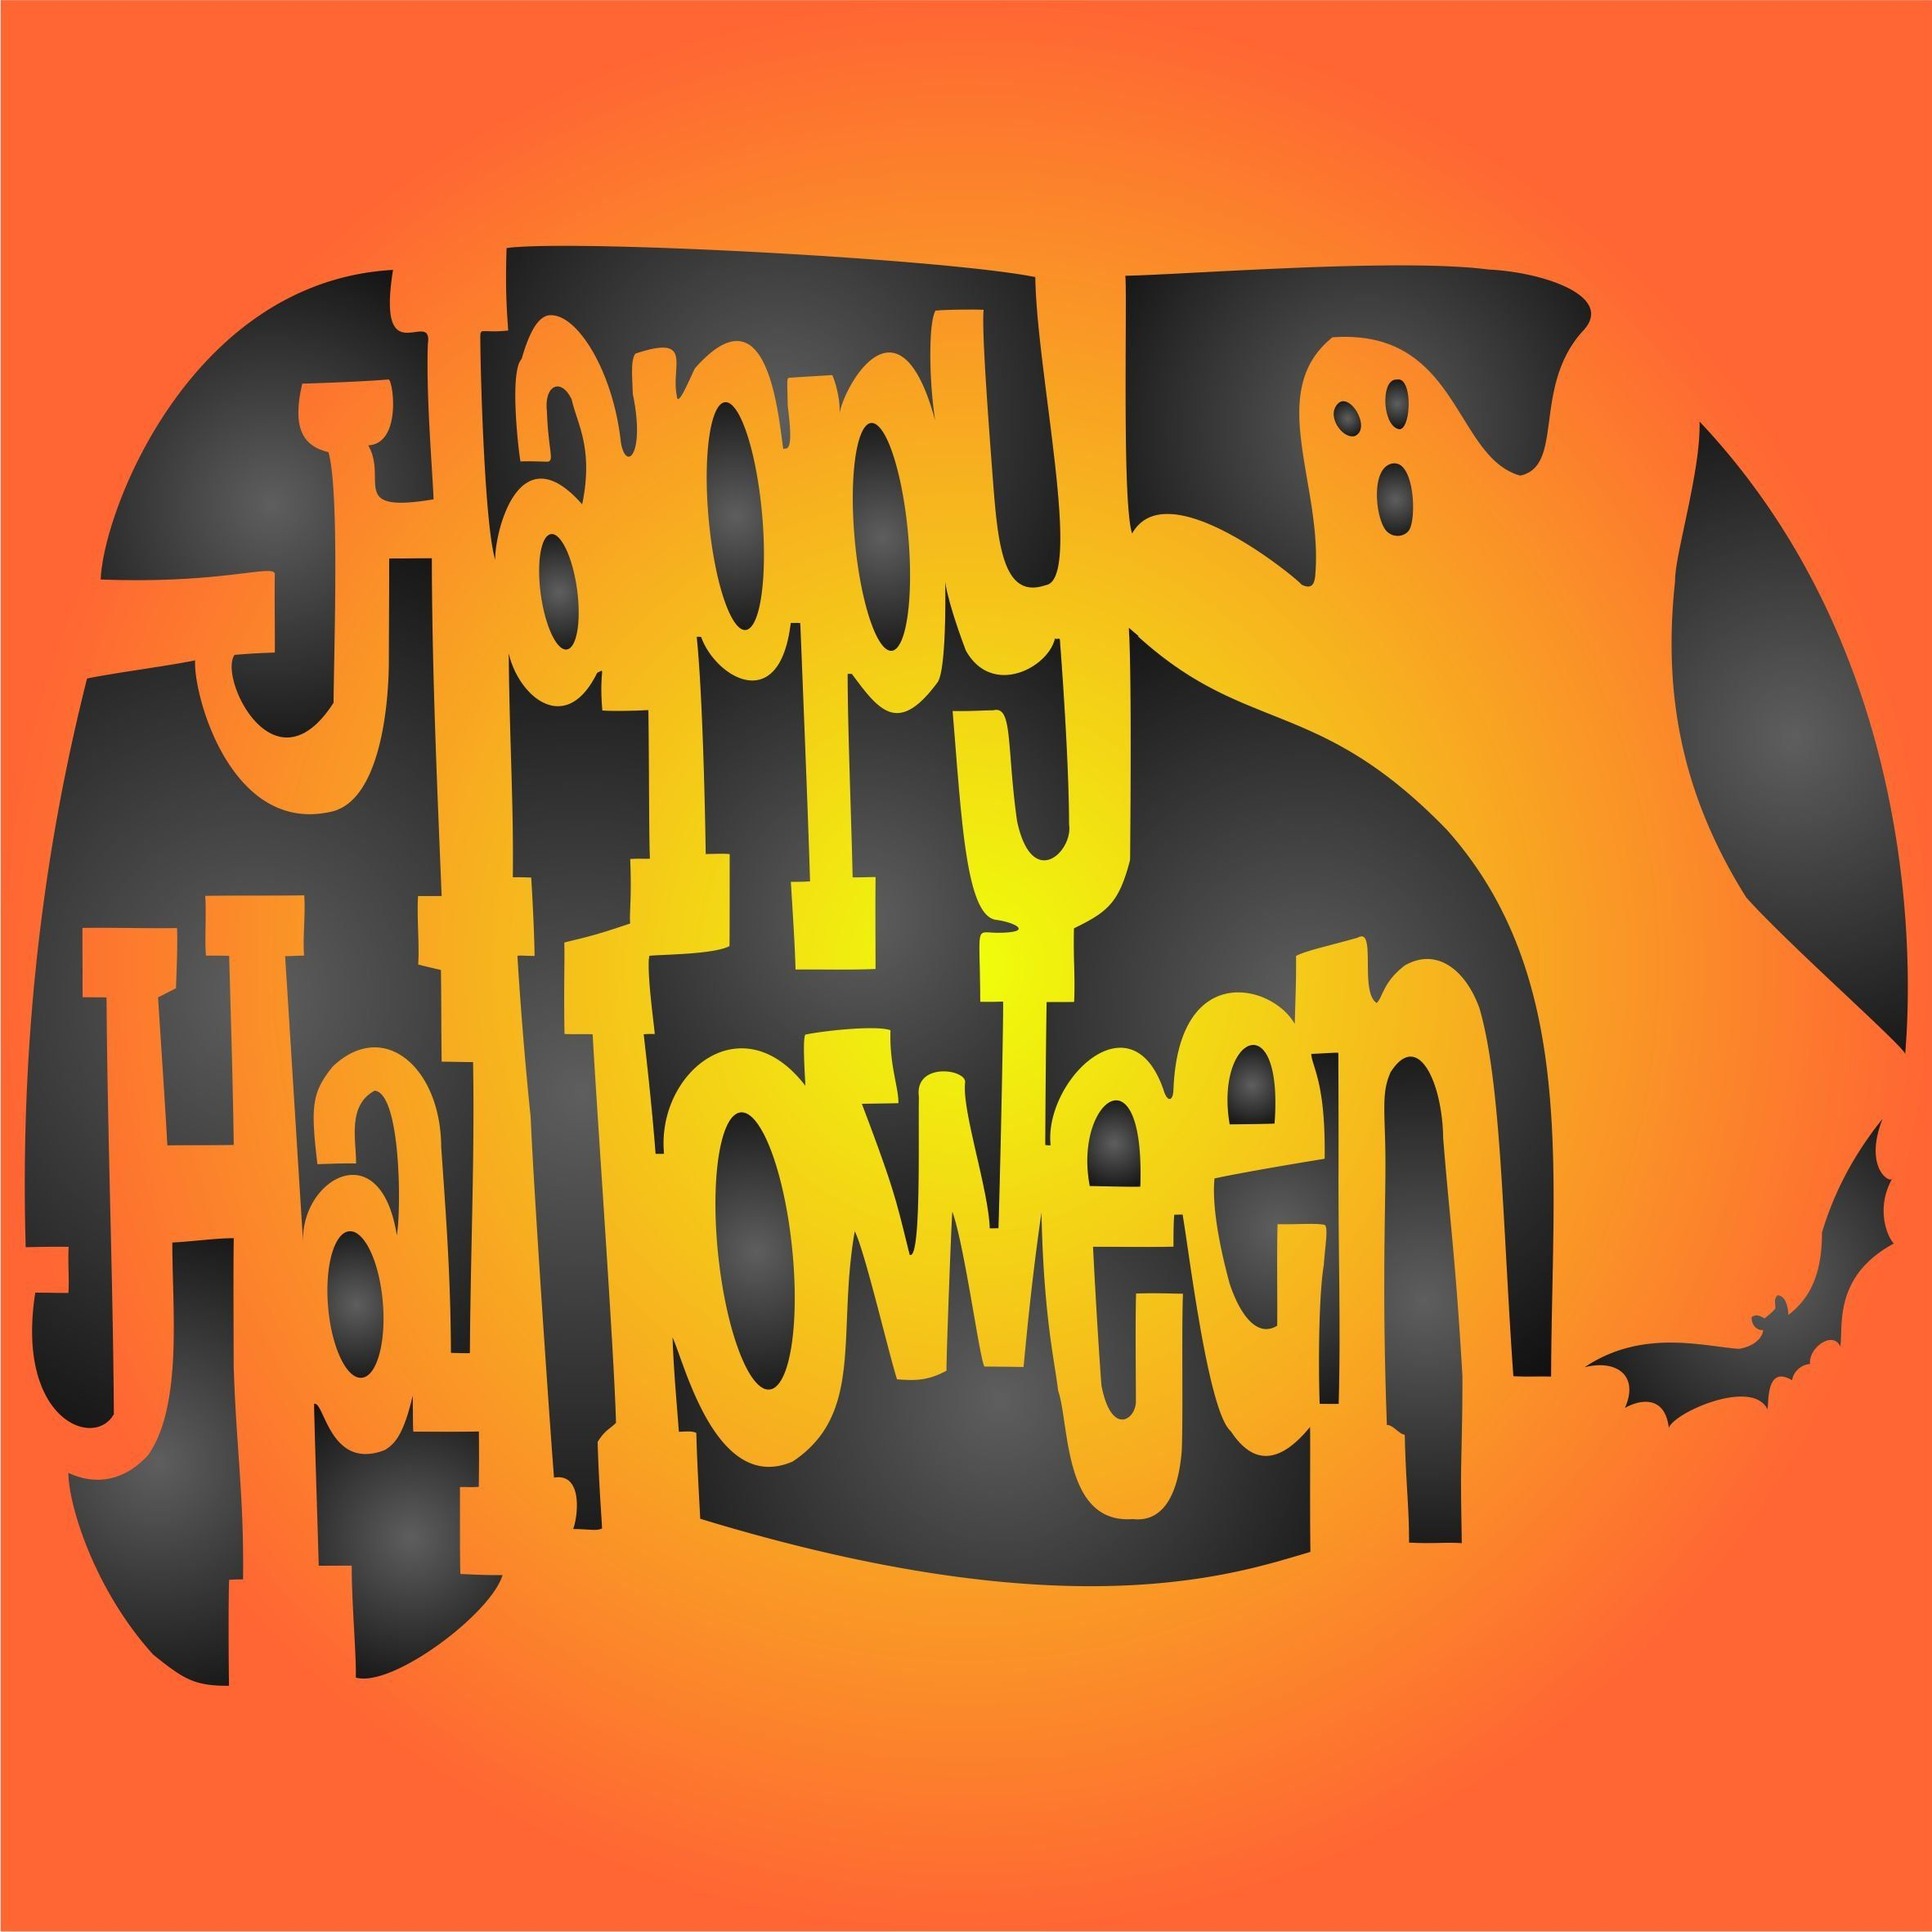 Happy Halloween Stencil size 6.5†w x 5†h Reusable